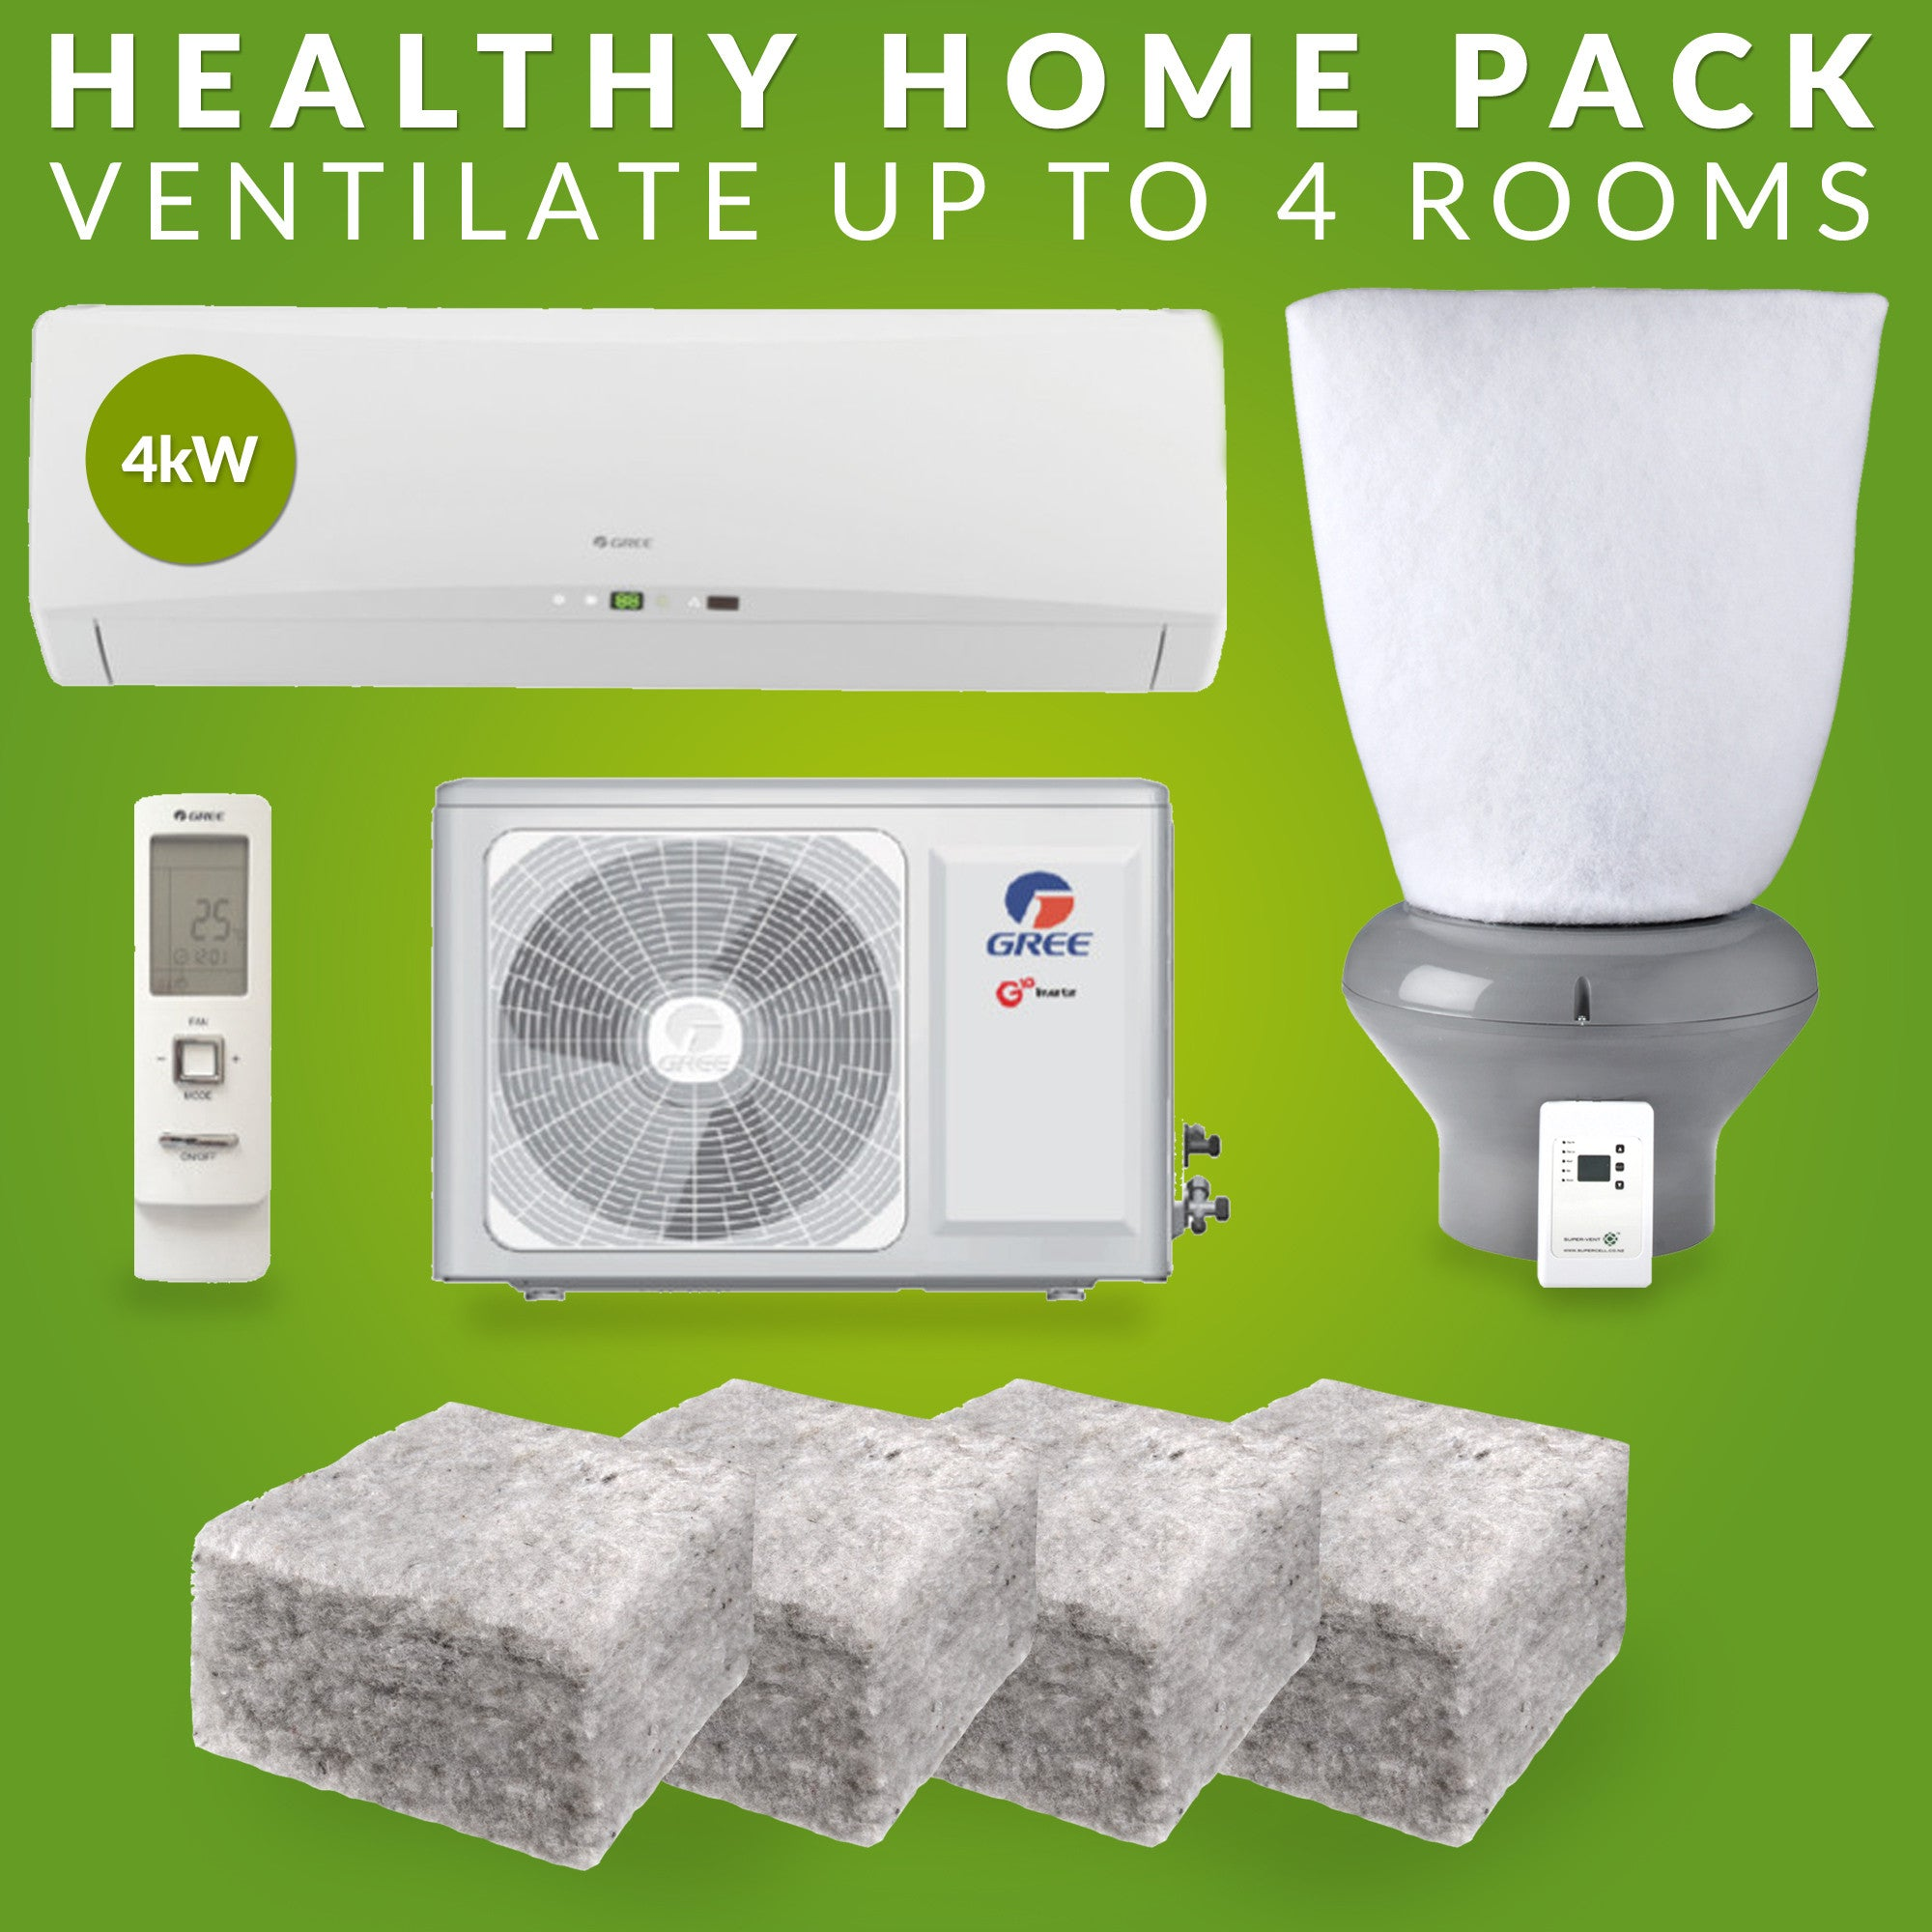 Healthy Home Pack: 4kW Gree heat pump, supercell ventilation system, ventilation fitlers